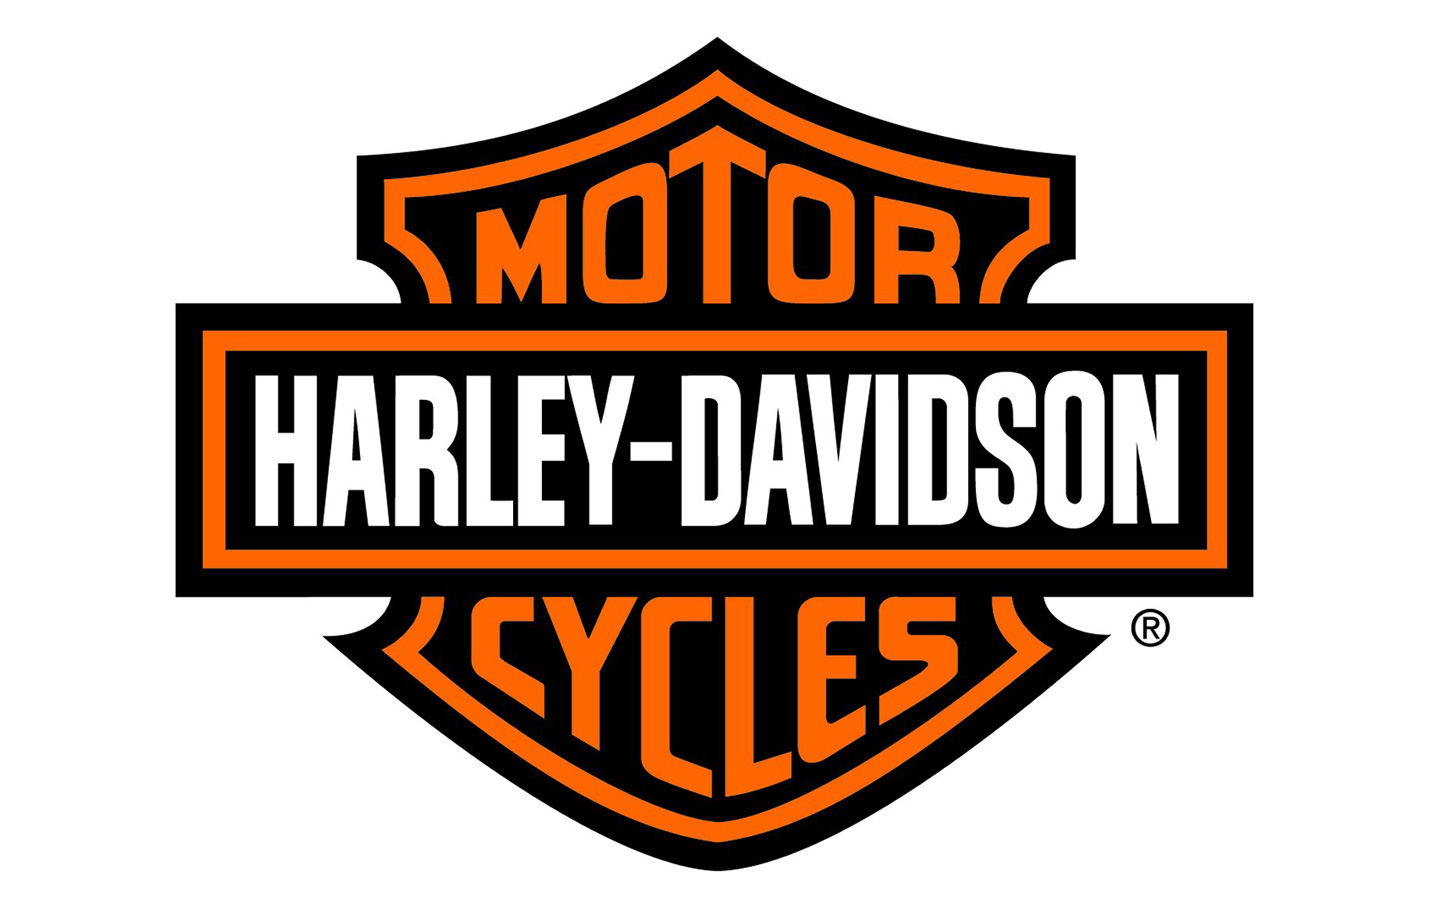 Sl09180 besides Viewtopic moreover All Harley Davidson Logos together with ROY 20JONES 20JR also 261658487799. on armour corn dogs